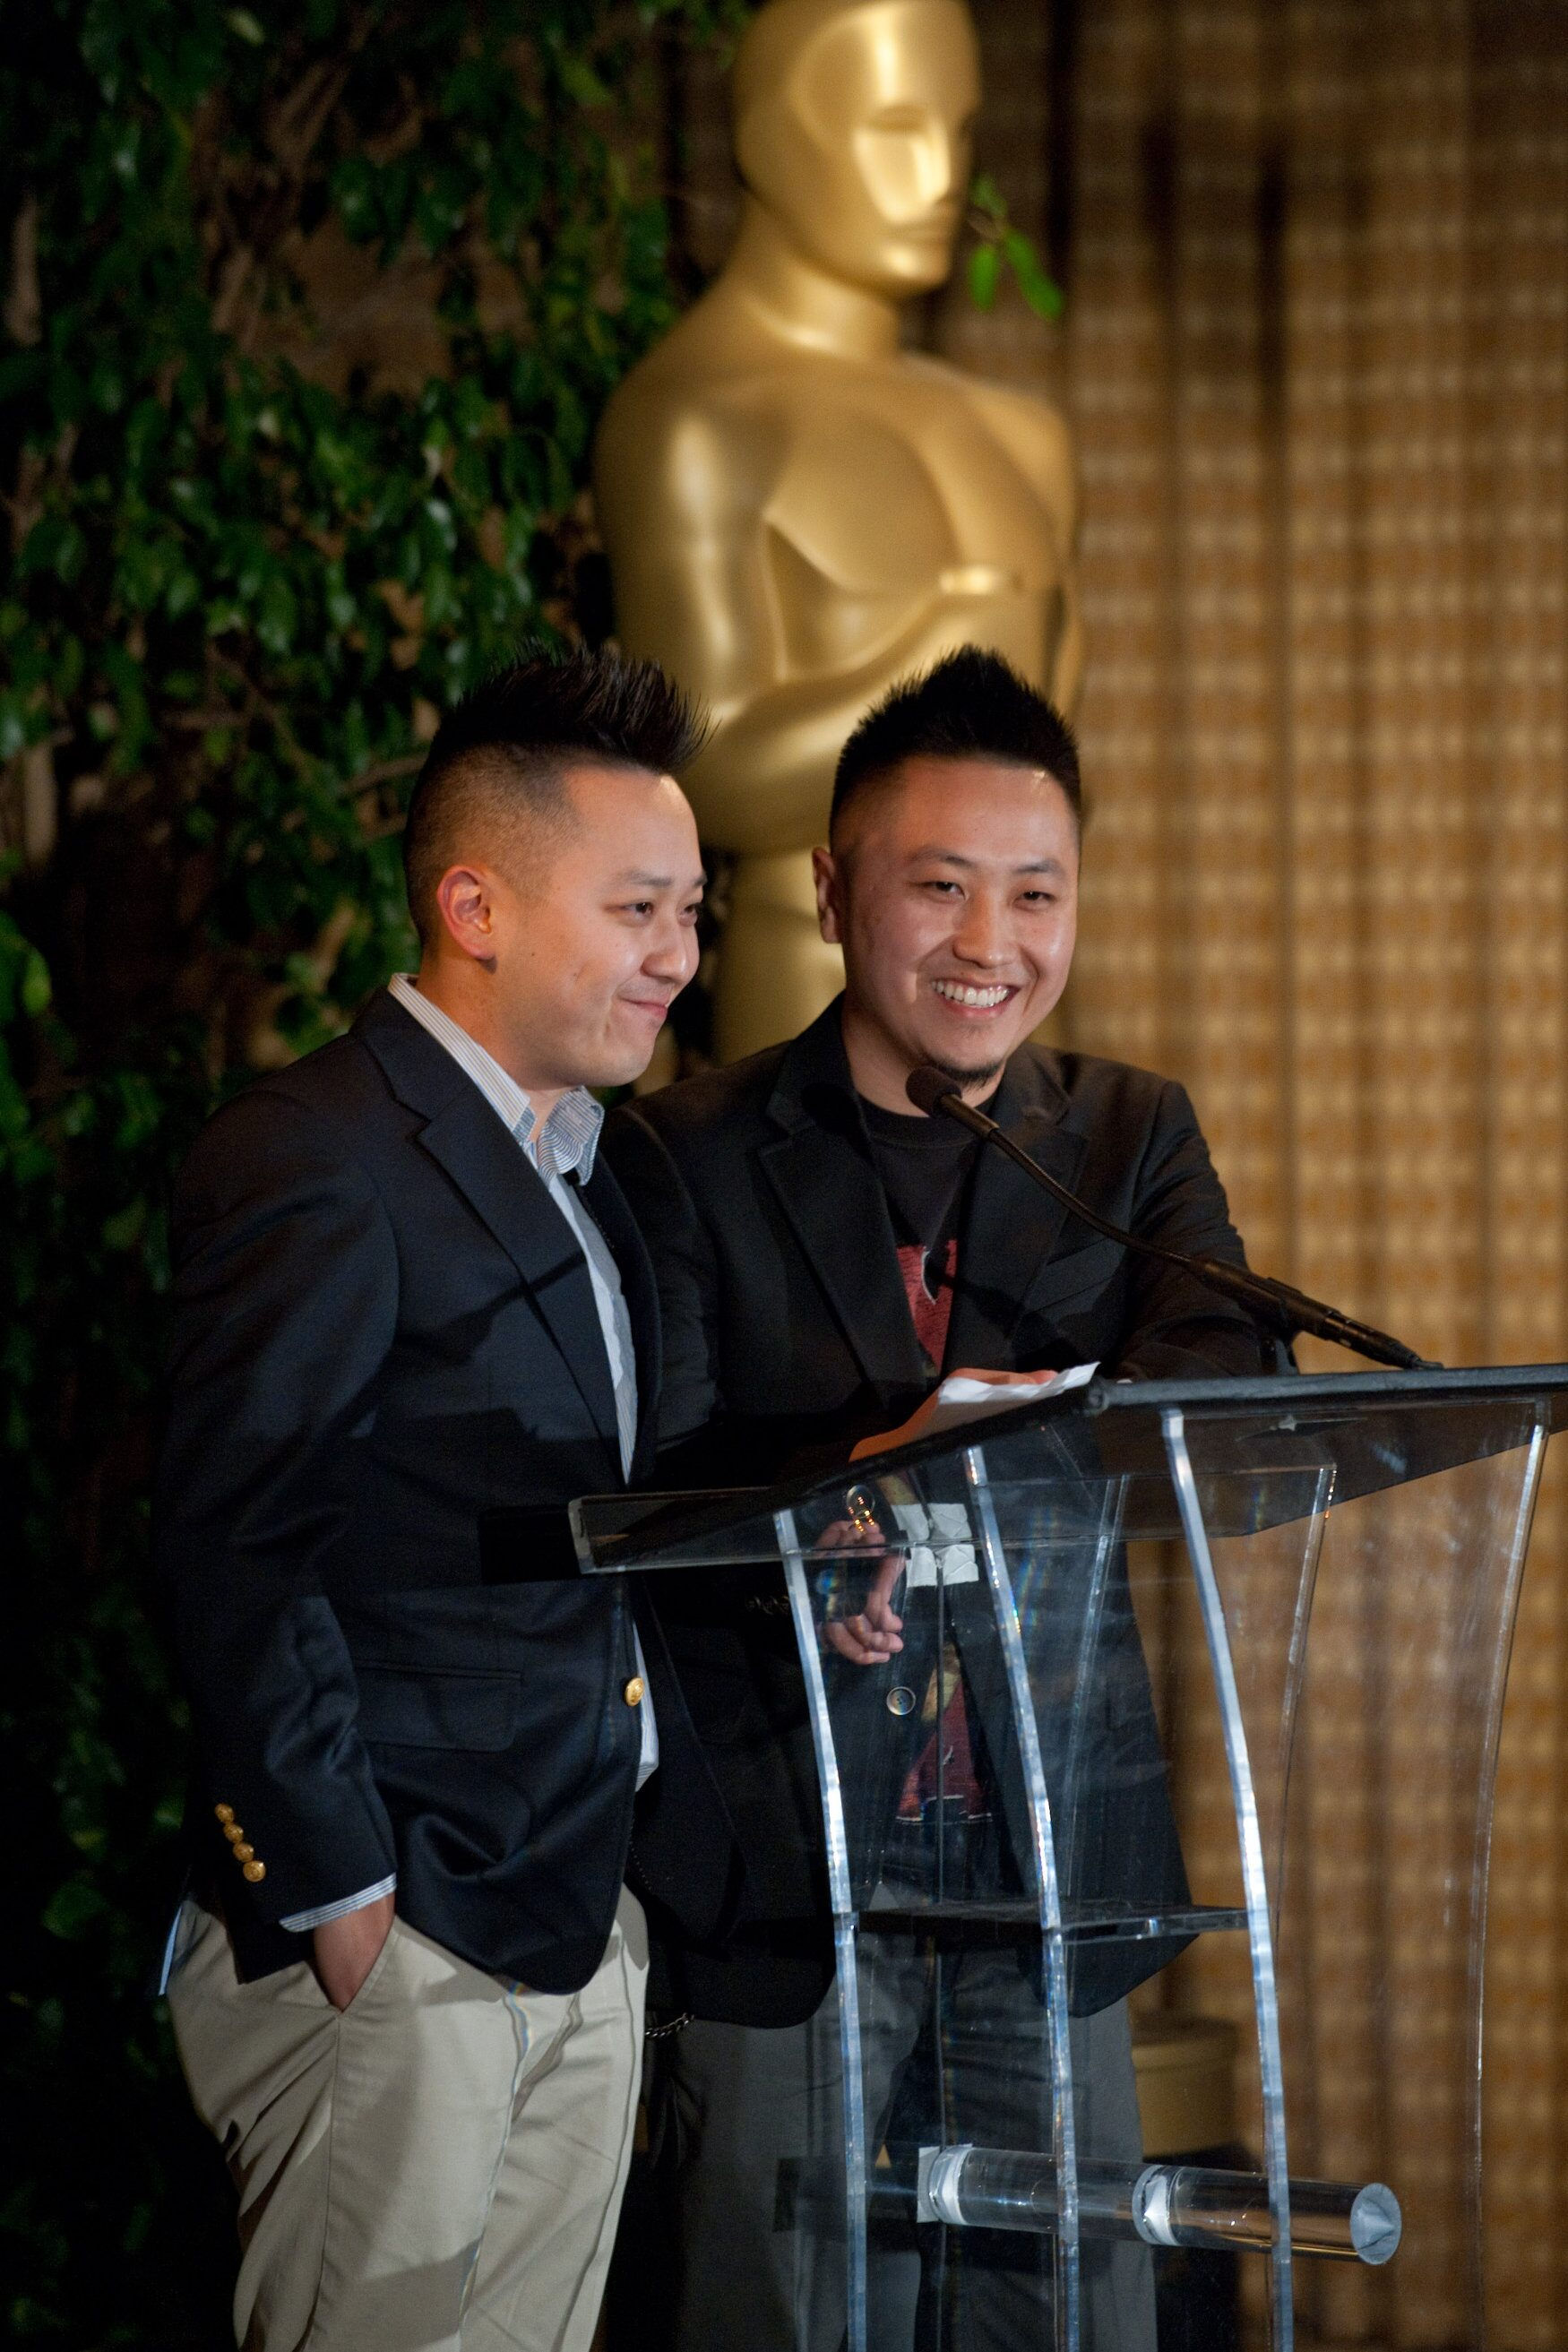 """The Academy of Motion Picture Arts and Sciences presented its Nicholl Fellowships in Screenwriting on November 3 in Beverly Hills. Pictured here: fellows Abel Vang (left) and Burlee Vang (right), writers of """"The Tiger's Child."""""""